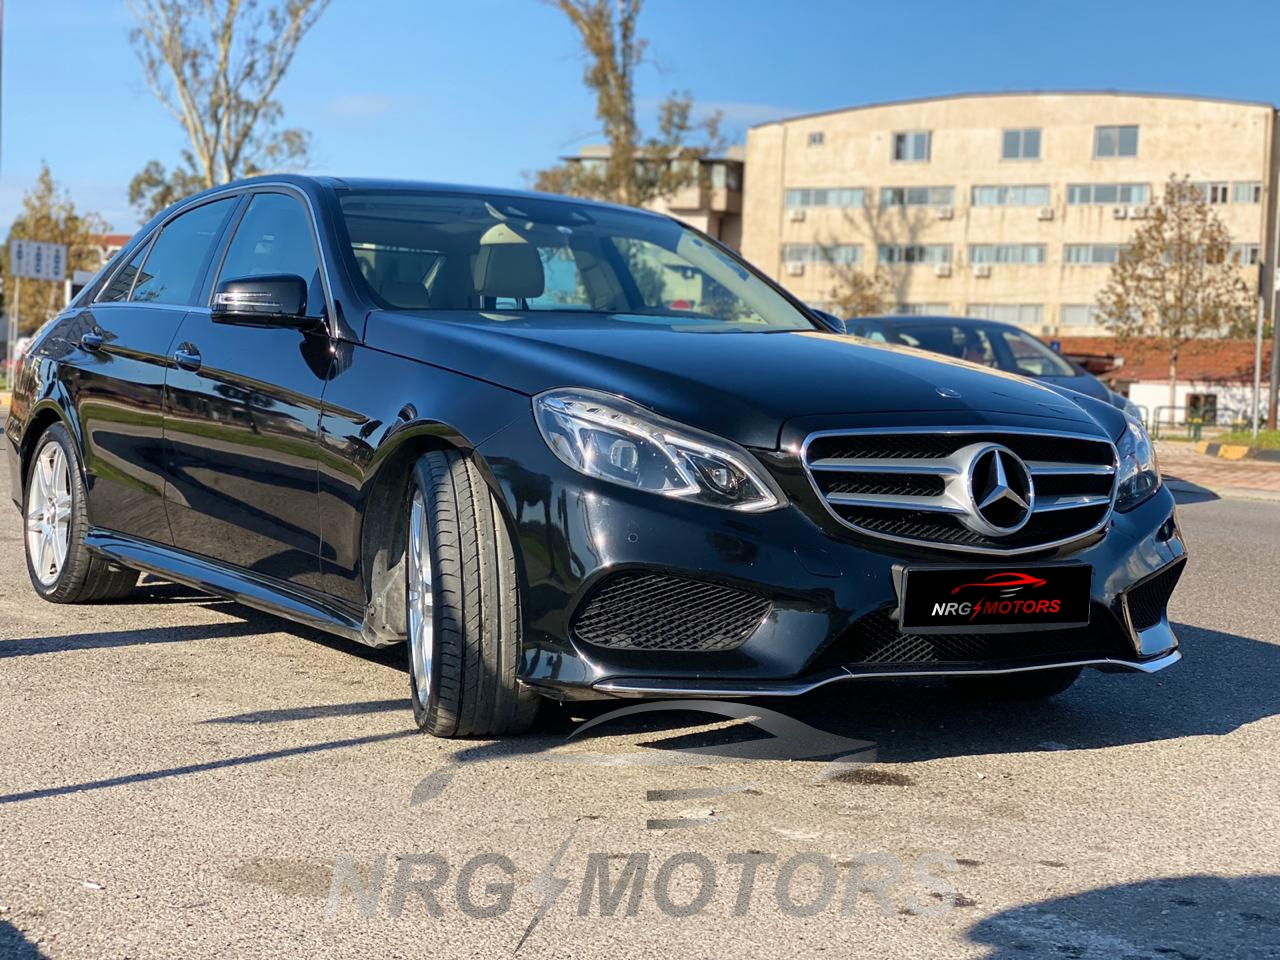 Mercedes Benz E Class 300 Bluetec for Sale, Diesel, Year 2013, Automatic Transmission. Luxury and comfortable car up to 5 persons - NRG MOTORS